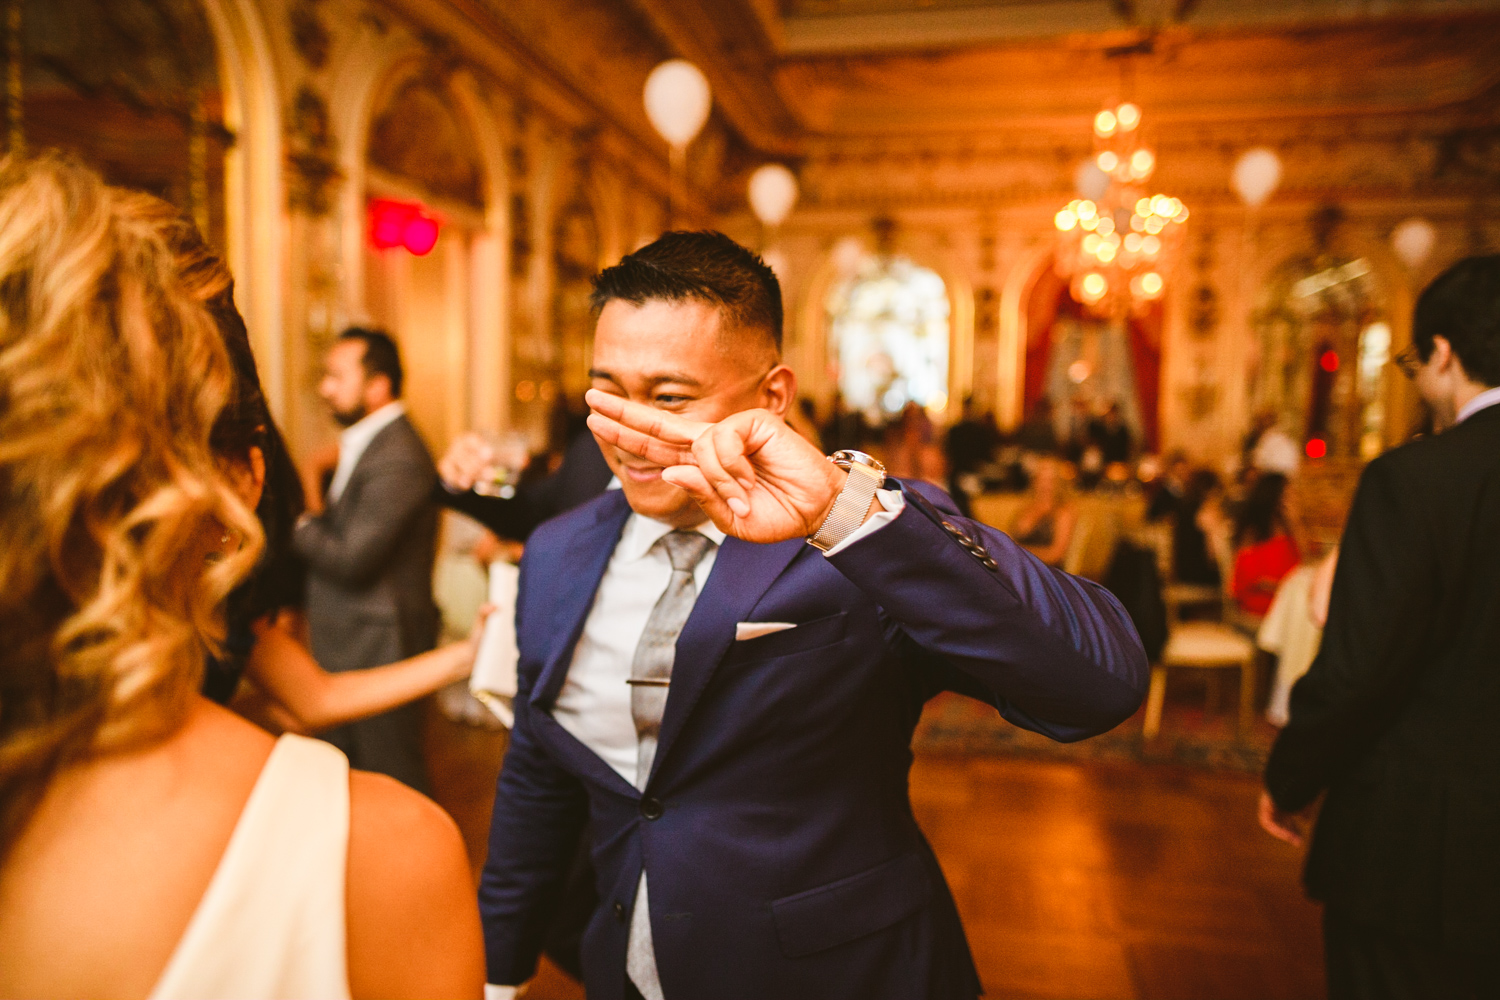 016 toasts and cheers at a washington dc engagement party cosmos club.jpg